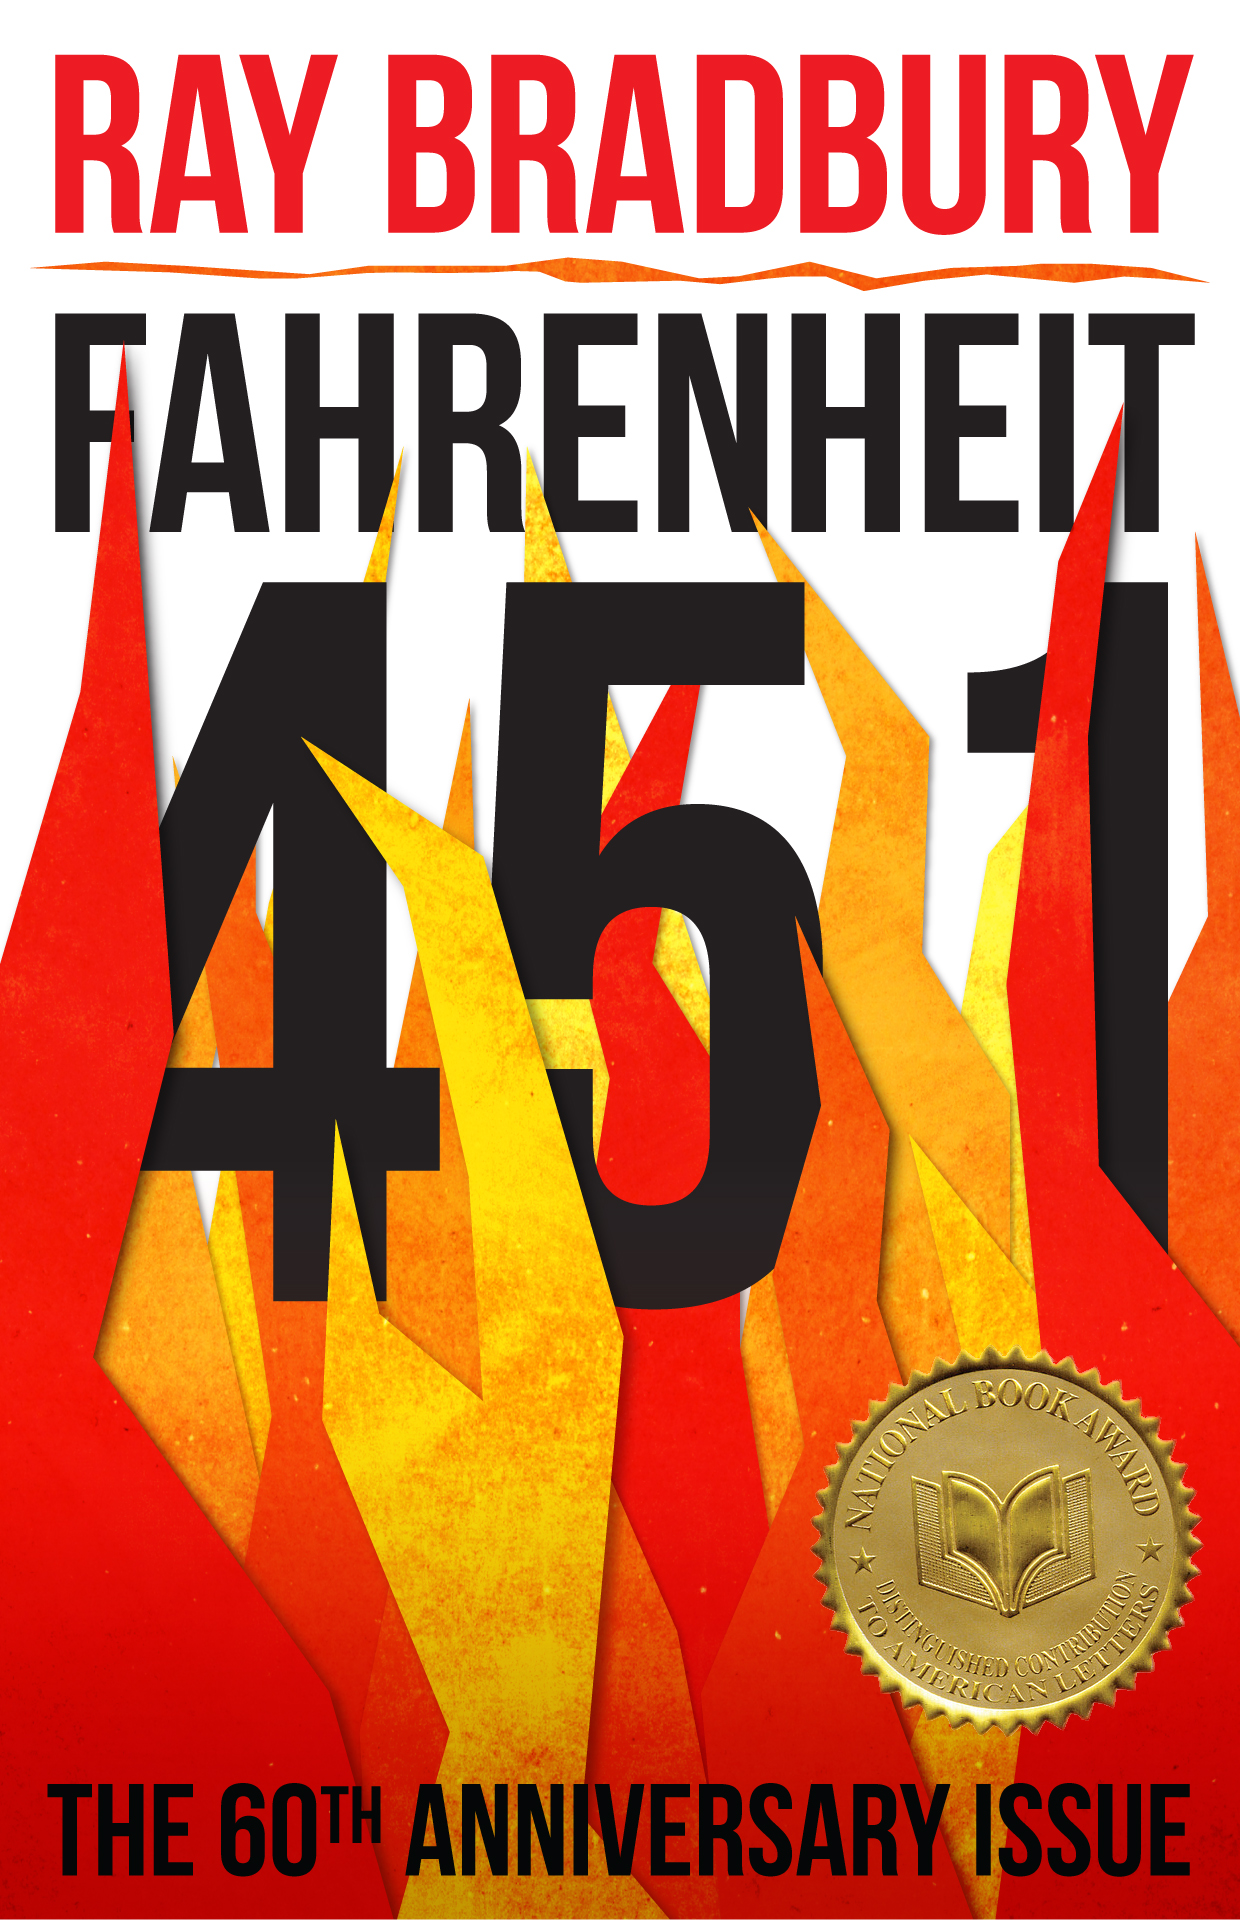 bradburys fahrenheit 451 modern dystopia warnings Lessons from fahrenheit 451 for the modern day while books like 1984 and brave new world are getting a lot of buzz right now because of the political climate of the country, i think there's a classic dystopian title which is even more deserving of our reading (and re-reading): ray bradbury's fahrenheit 451.